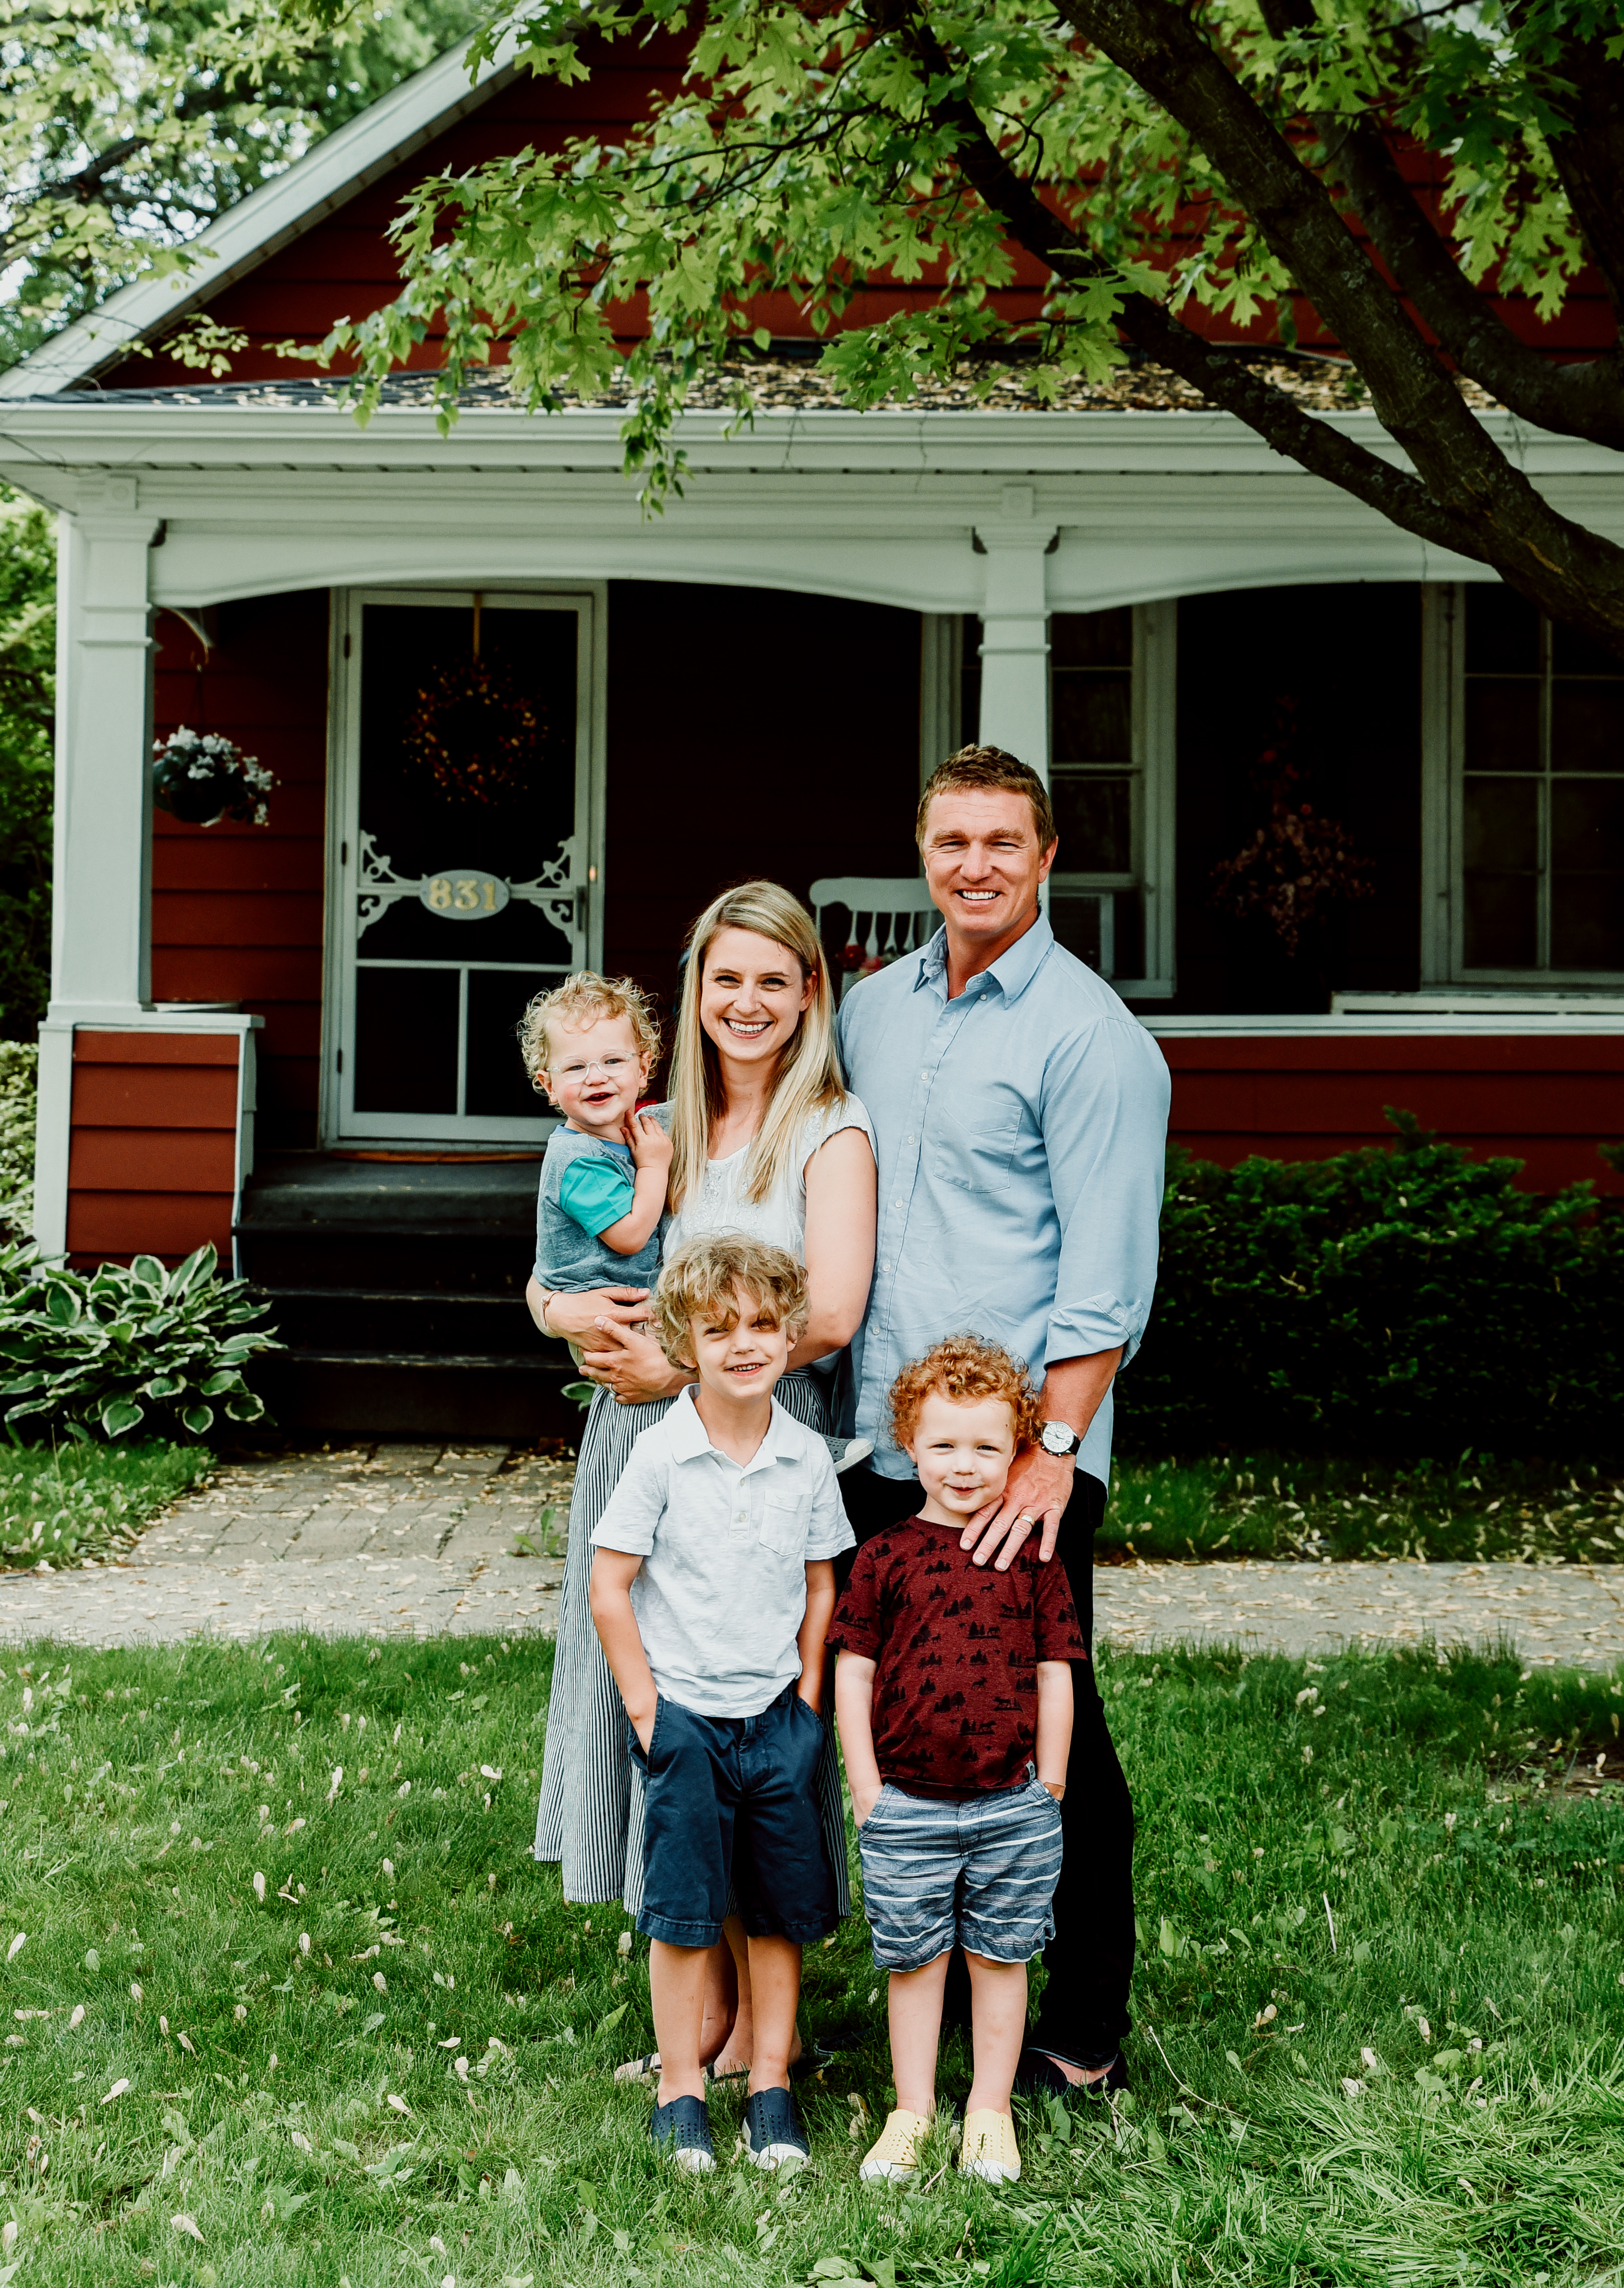 Author's family photo of her, husband, and three sons, standing and smiling at the camera.